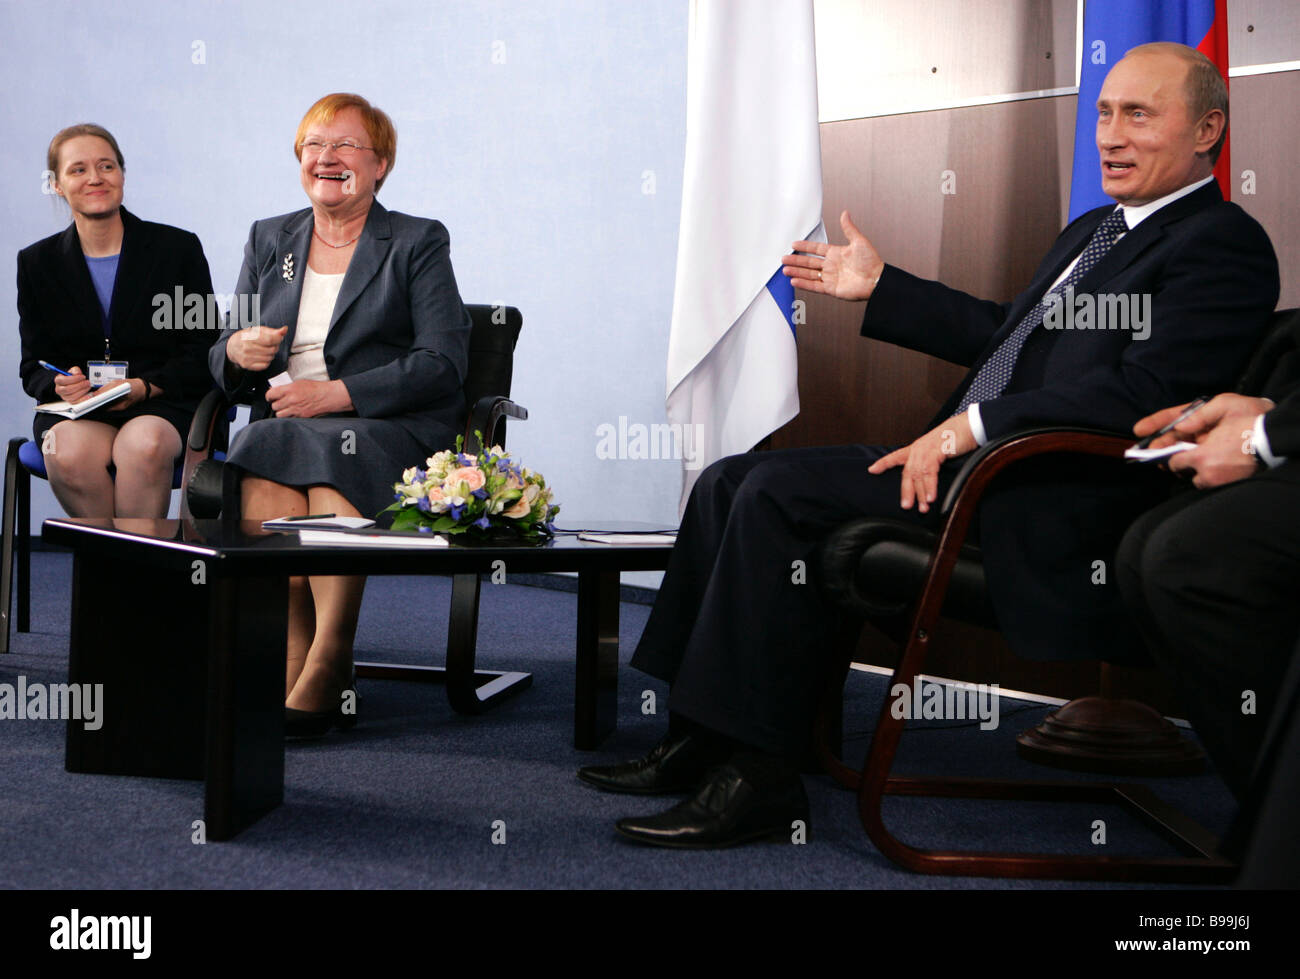 Presidents Tarja Halonen of Finland and Vladimir Putin of Russia second and third from left to right respectively - Stock Image